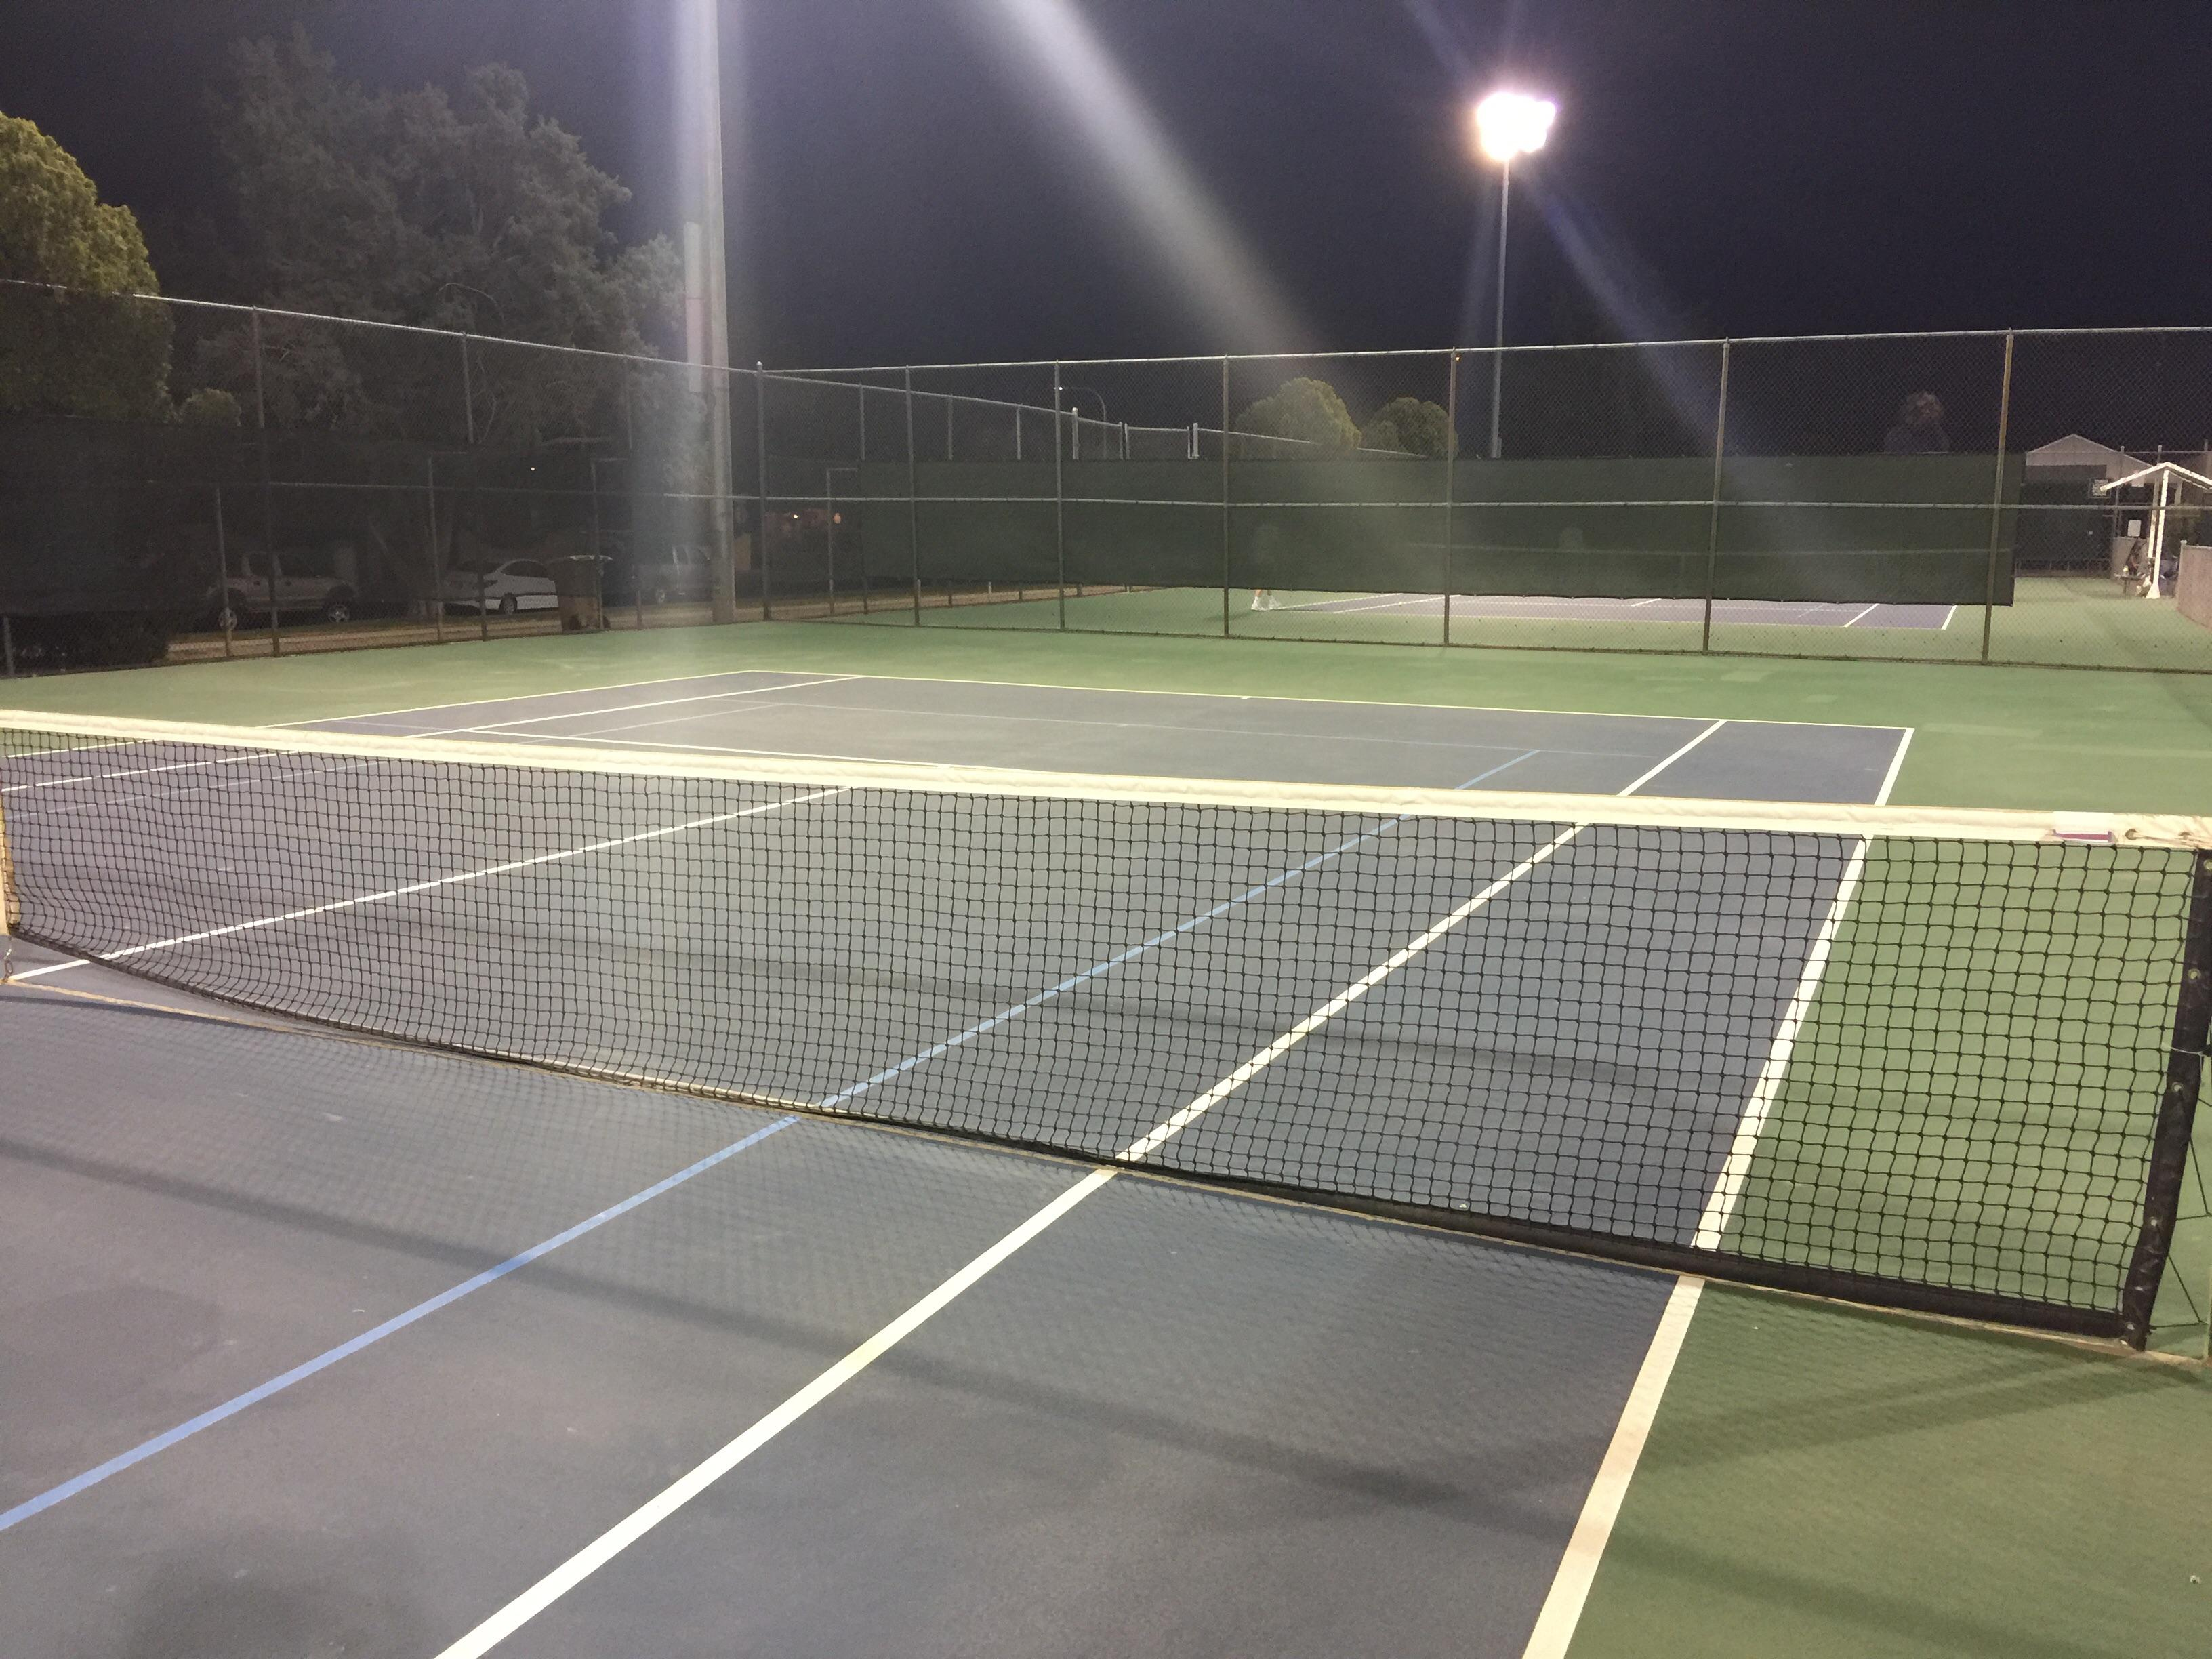 Lions Park tennis court lighted courts at night #usta